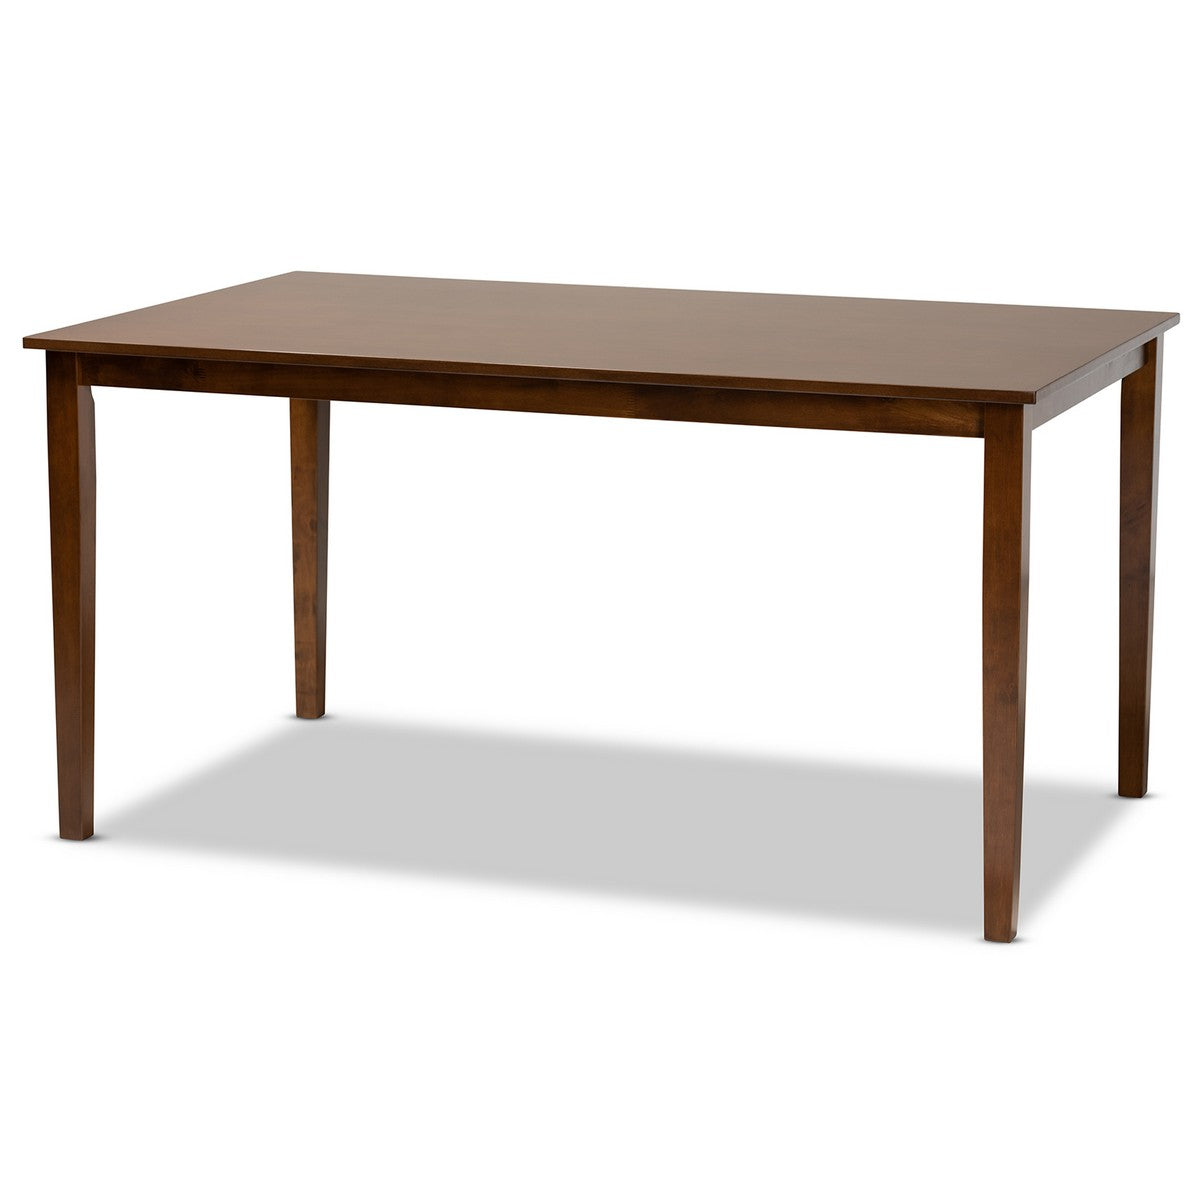 Baxton Studio Eveline Modern and Contemporary Walnut Brown Finished Rectangular Wood Dining Table Baxton Studio-dining table-Minimal And Modern - 1